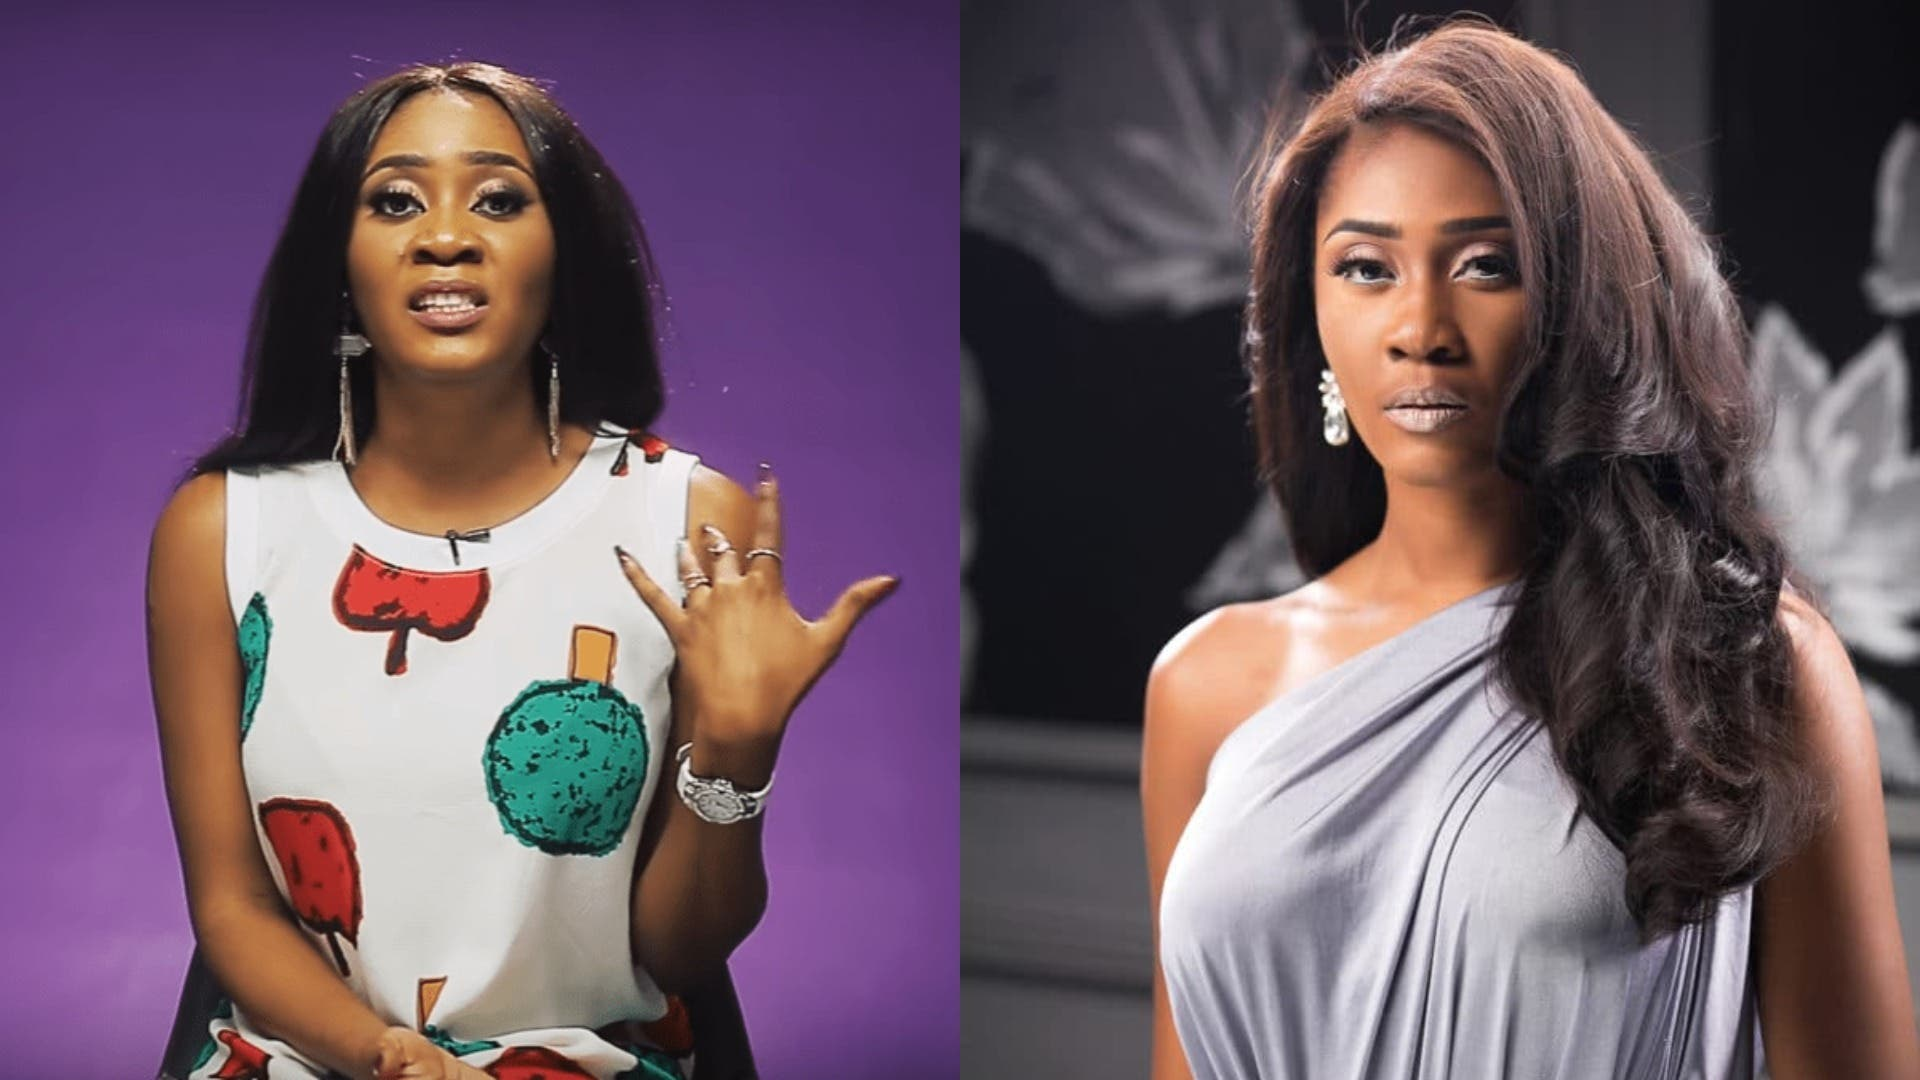 """""""Bride Price Should Be Scrapped In Marriage, Women Are Not Property To Sold"""" - Actress Toni Tones 1"""